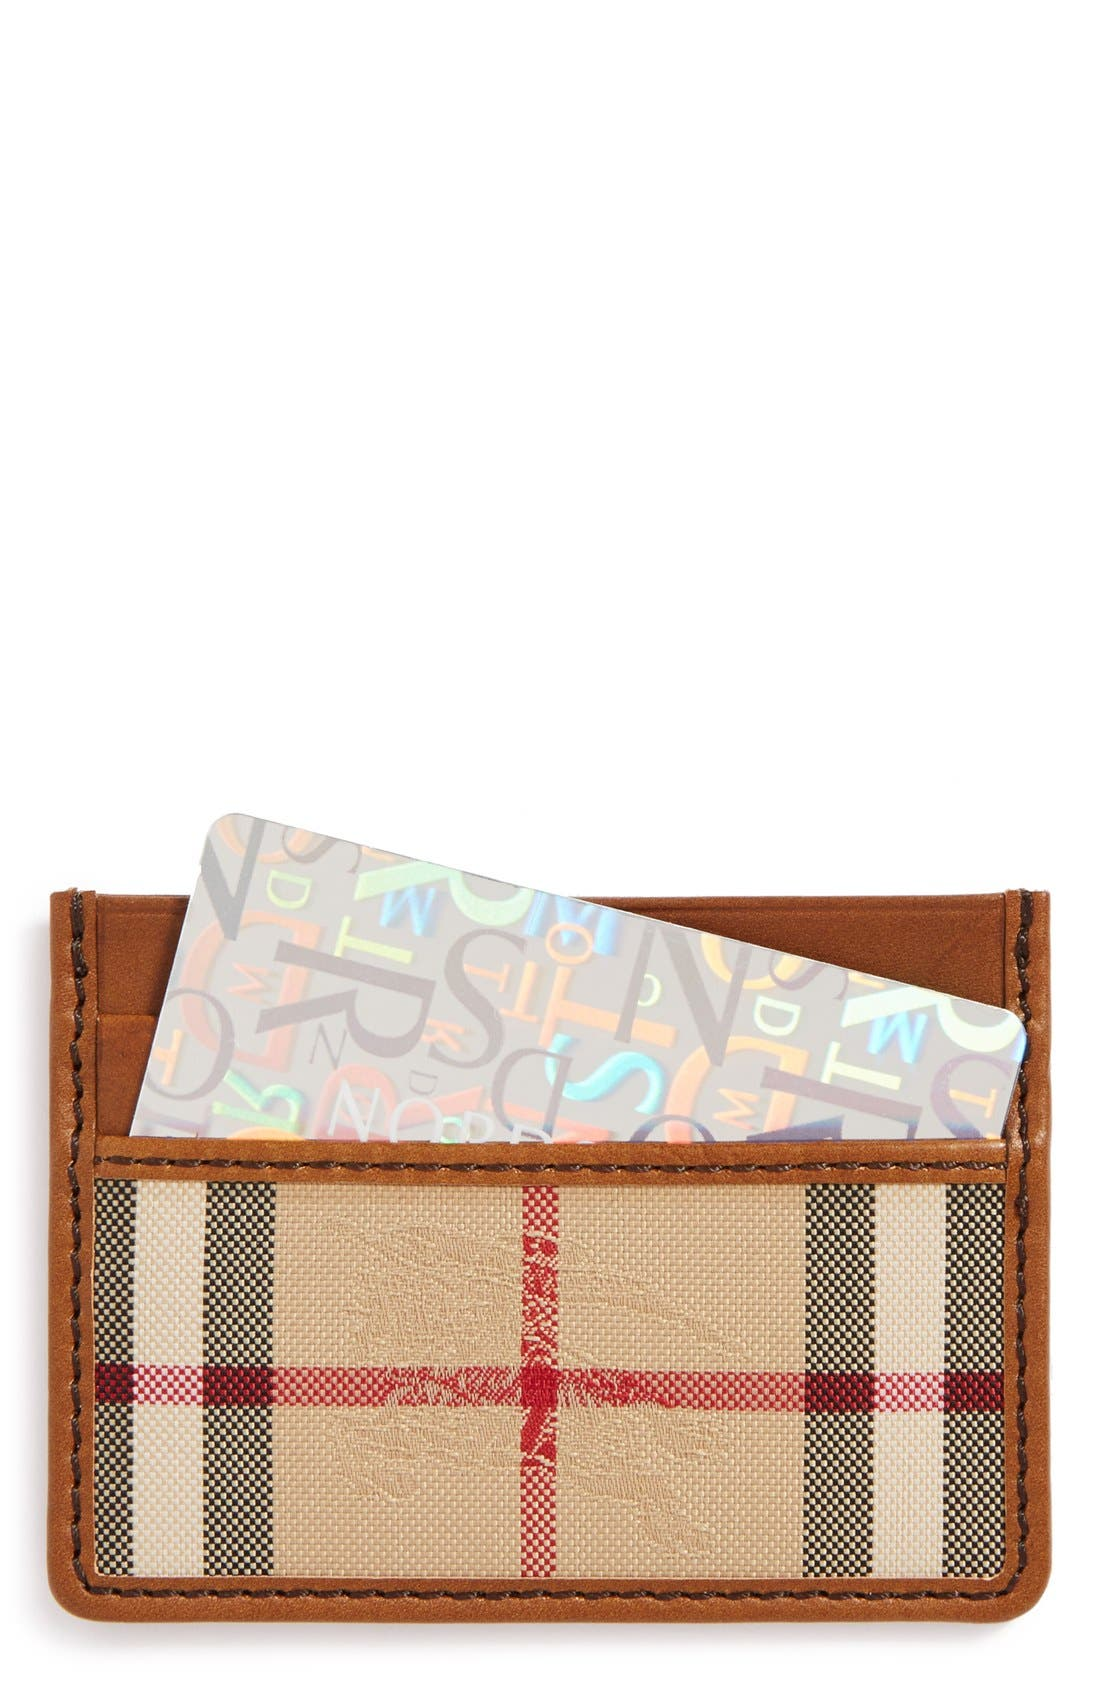 Burberry Sandon Horseferry Check Card Case